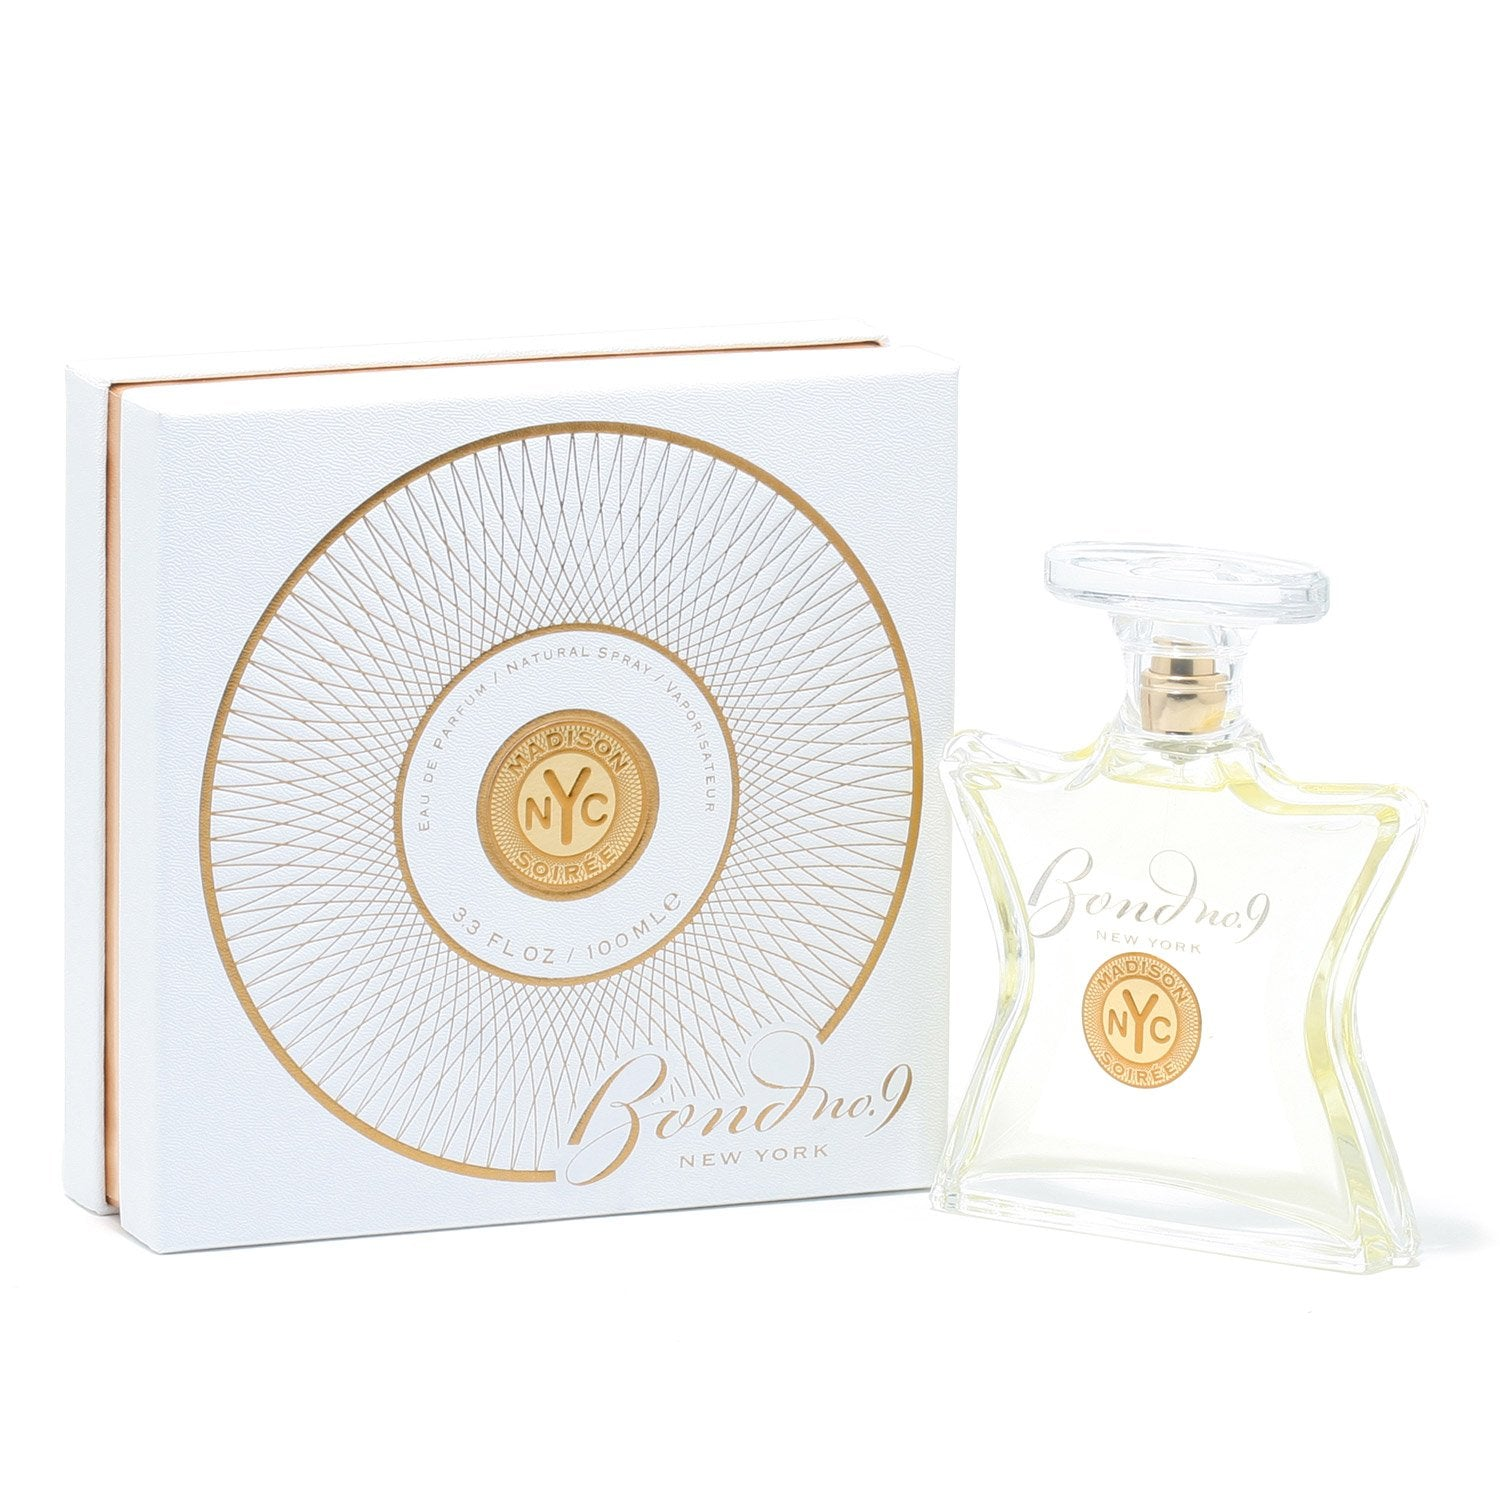 Perfume - BOND NO 9 MADISON SOIREE FOR WOMEN - EAU DE PARFUM SPRAY, 3.4 OZ